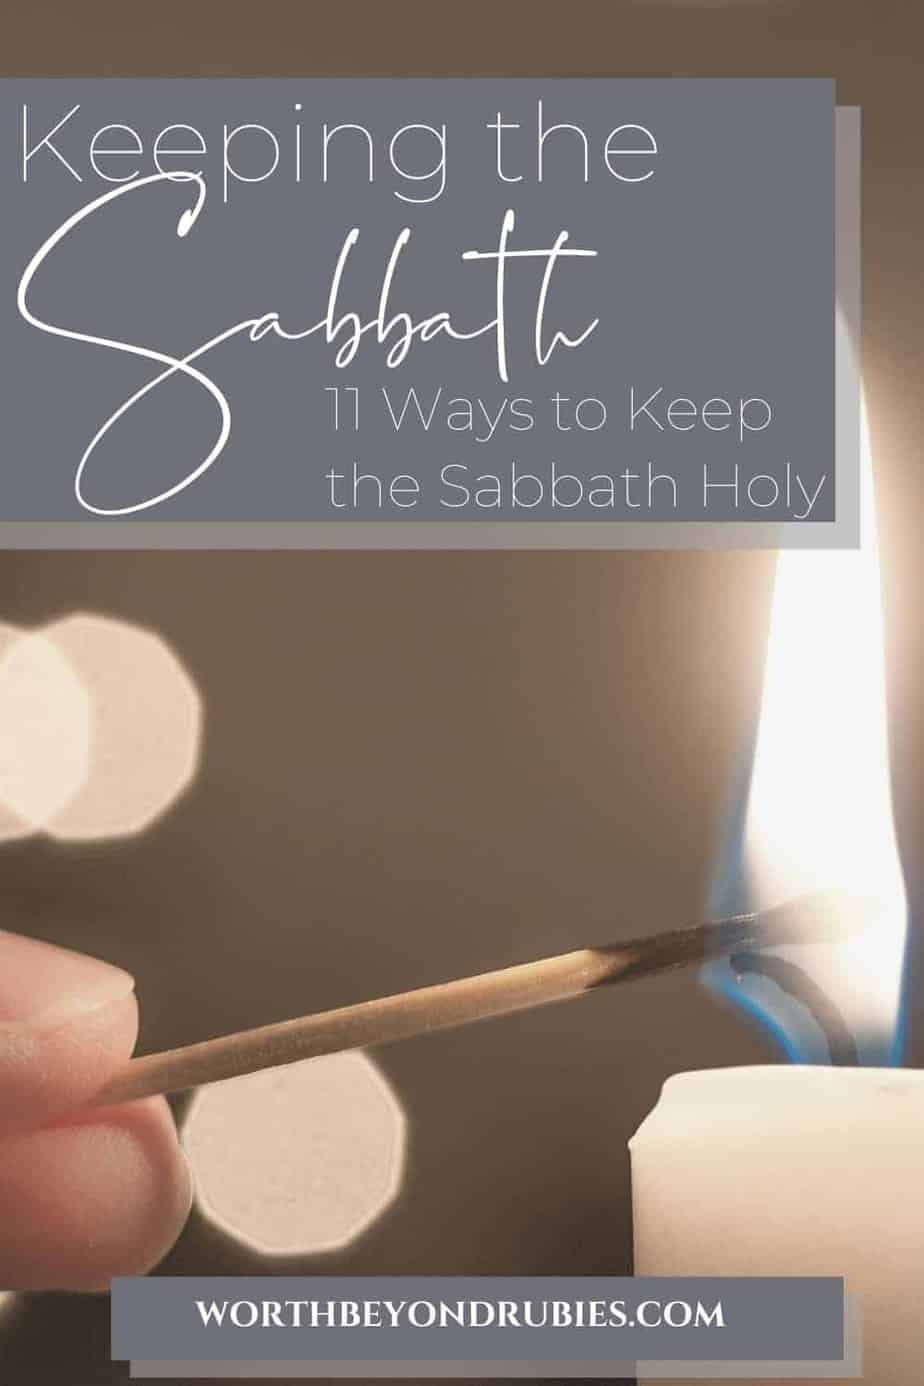 An image of a woman's hand holding a match and lighting a candle with glimmering lights in the background and text that says Keeping the Sabbath - 11 Ways to Keep the Sabbath Holy